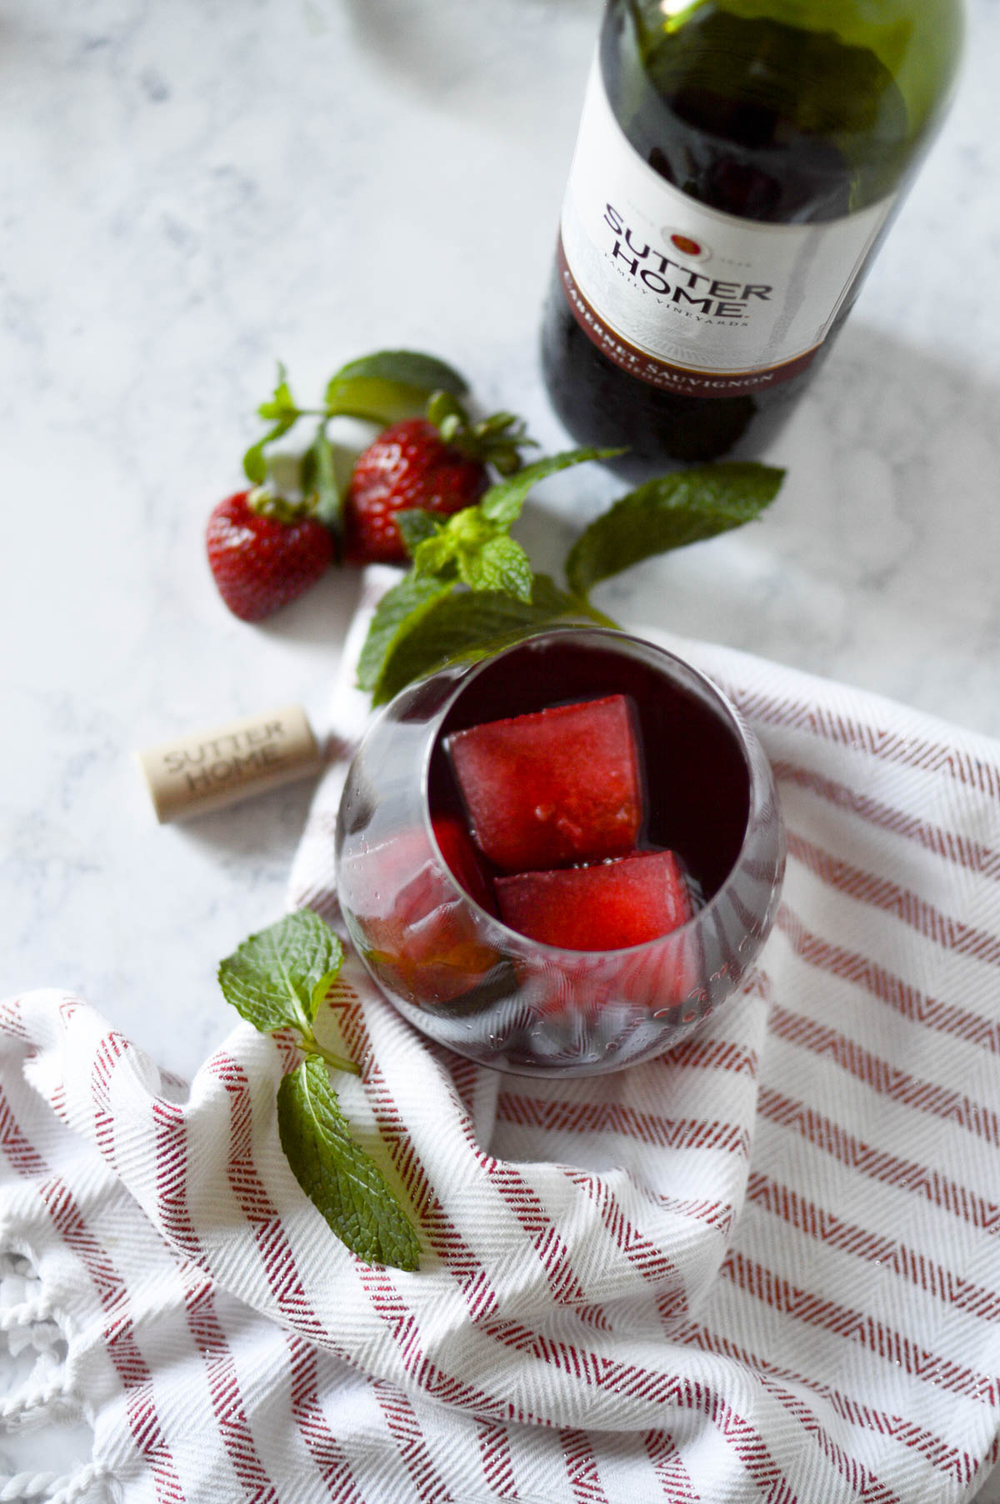 Strawberry Mint Wine Cocktail via. www.birdieshoots.com